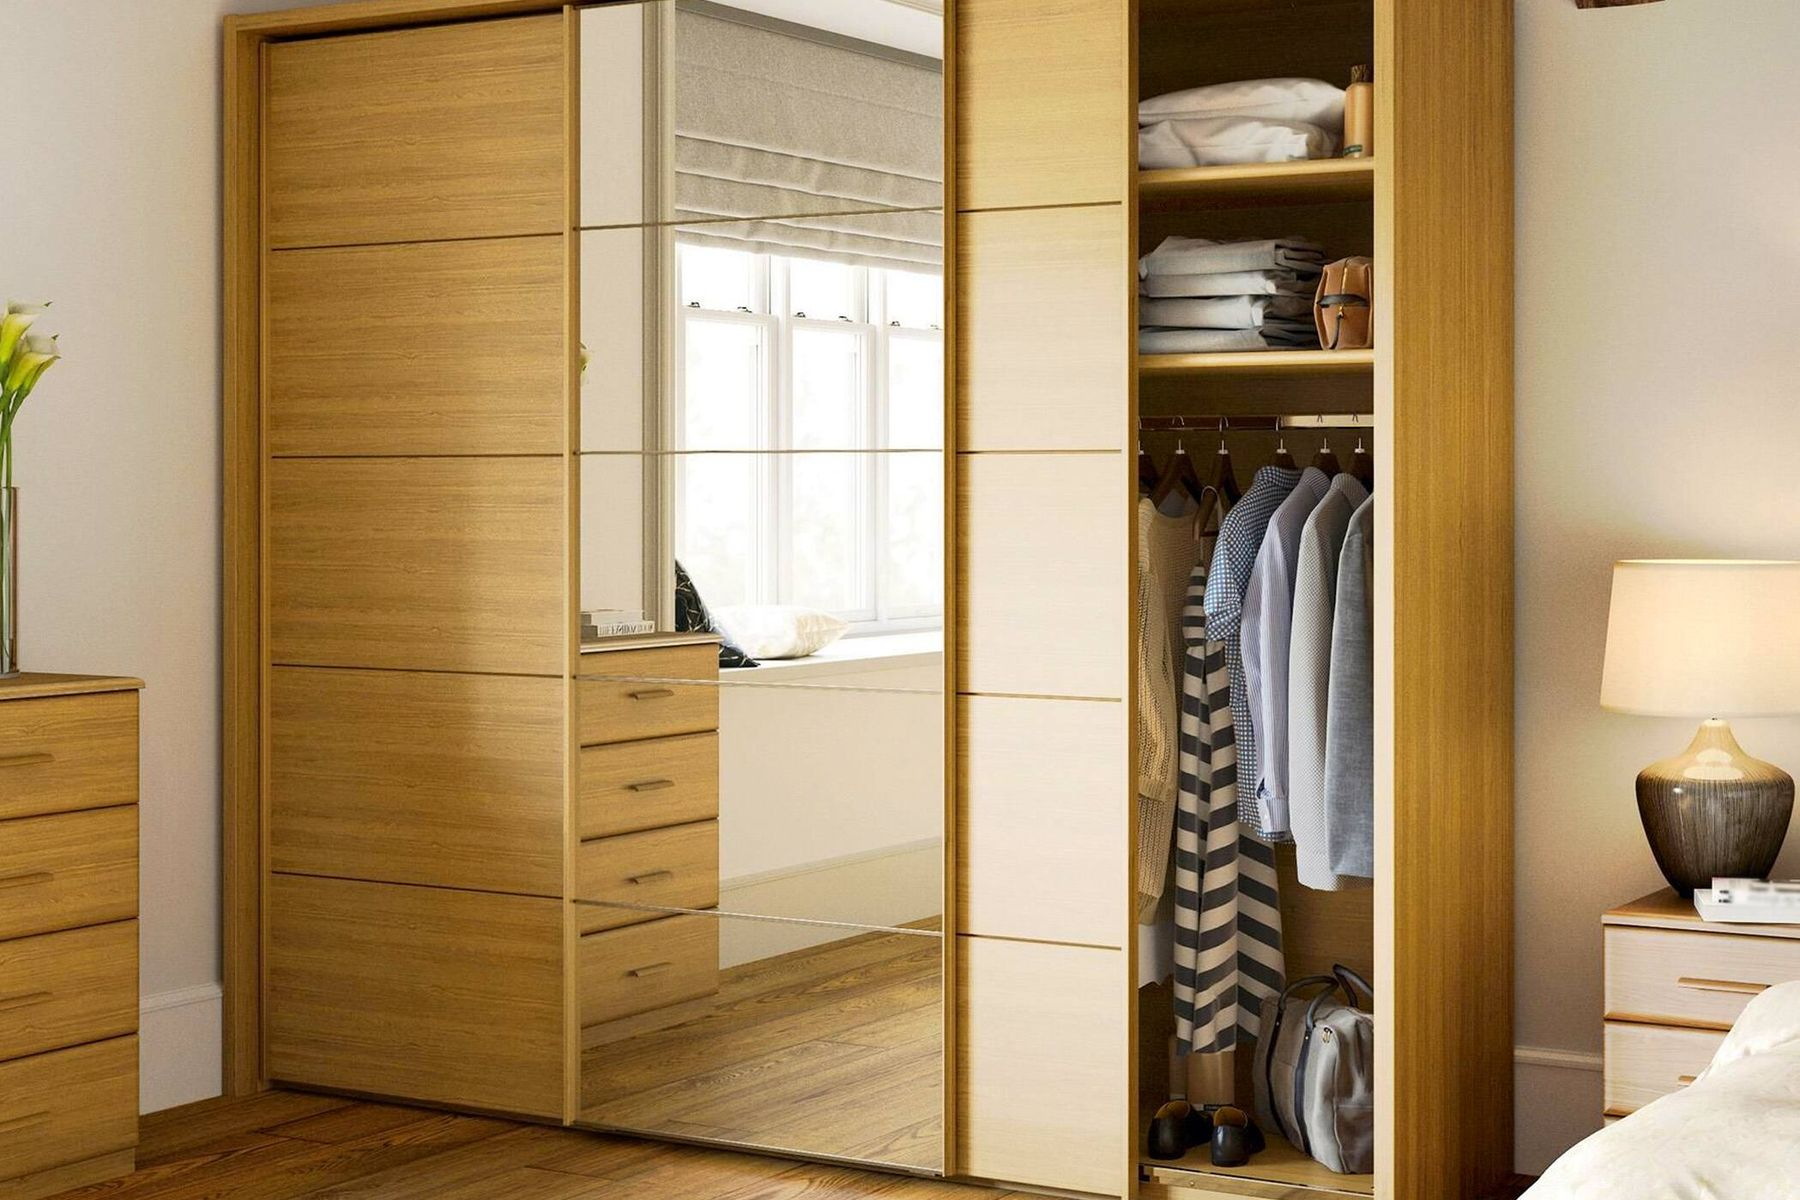 How to Deep-Clean and Organise Your Wardrobe